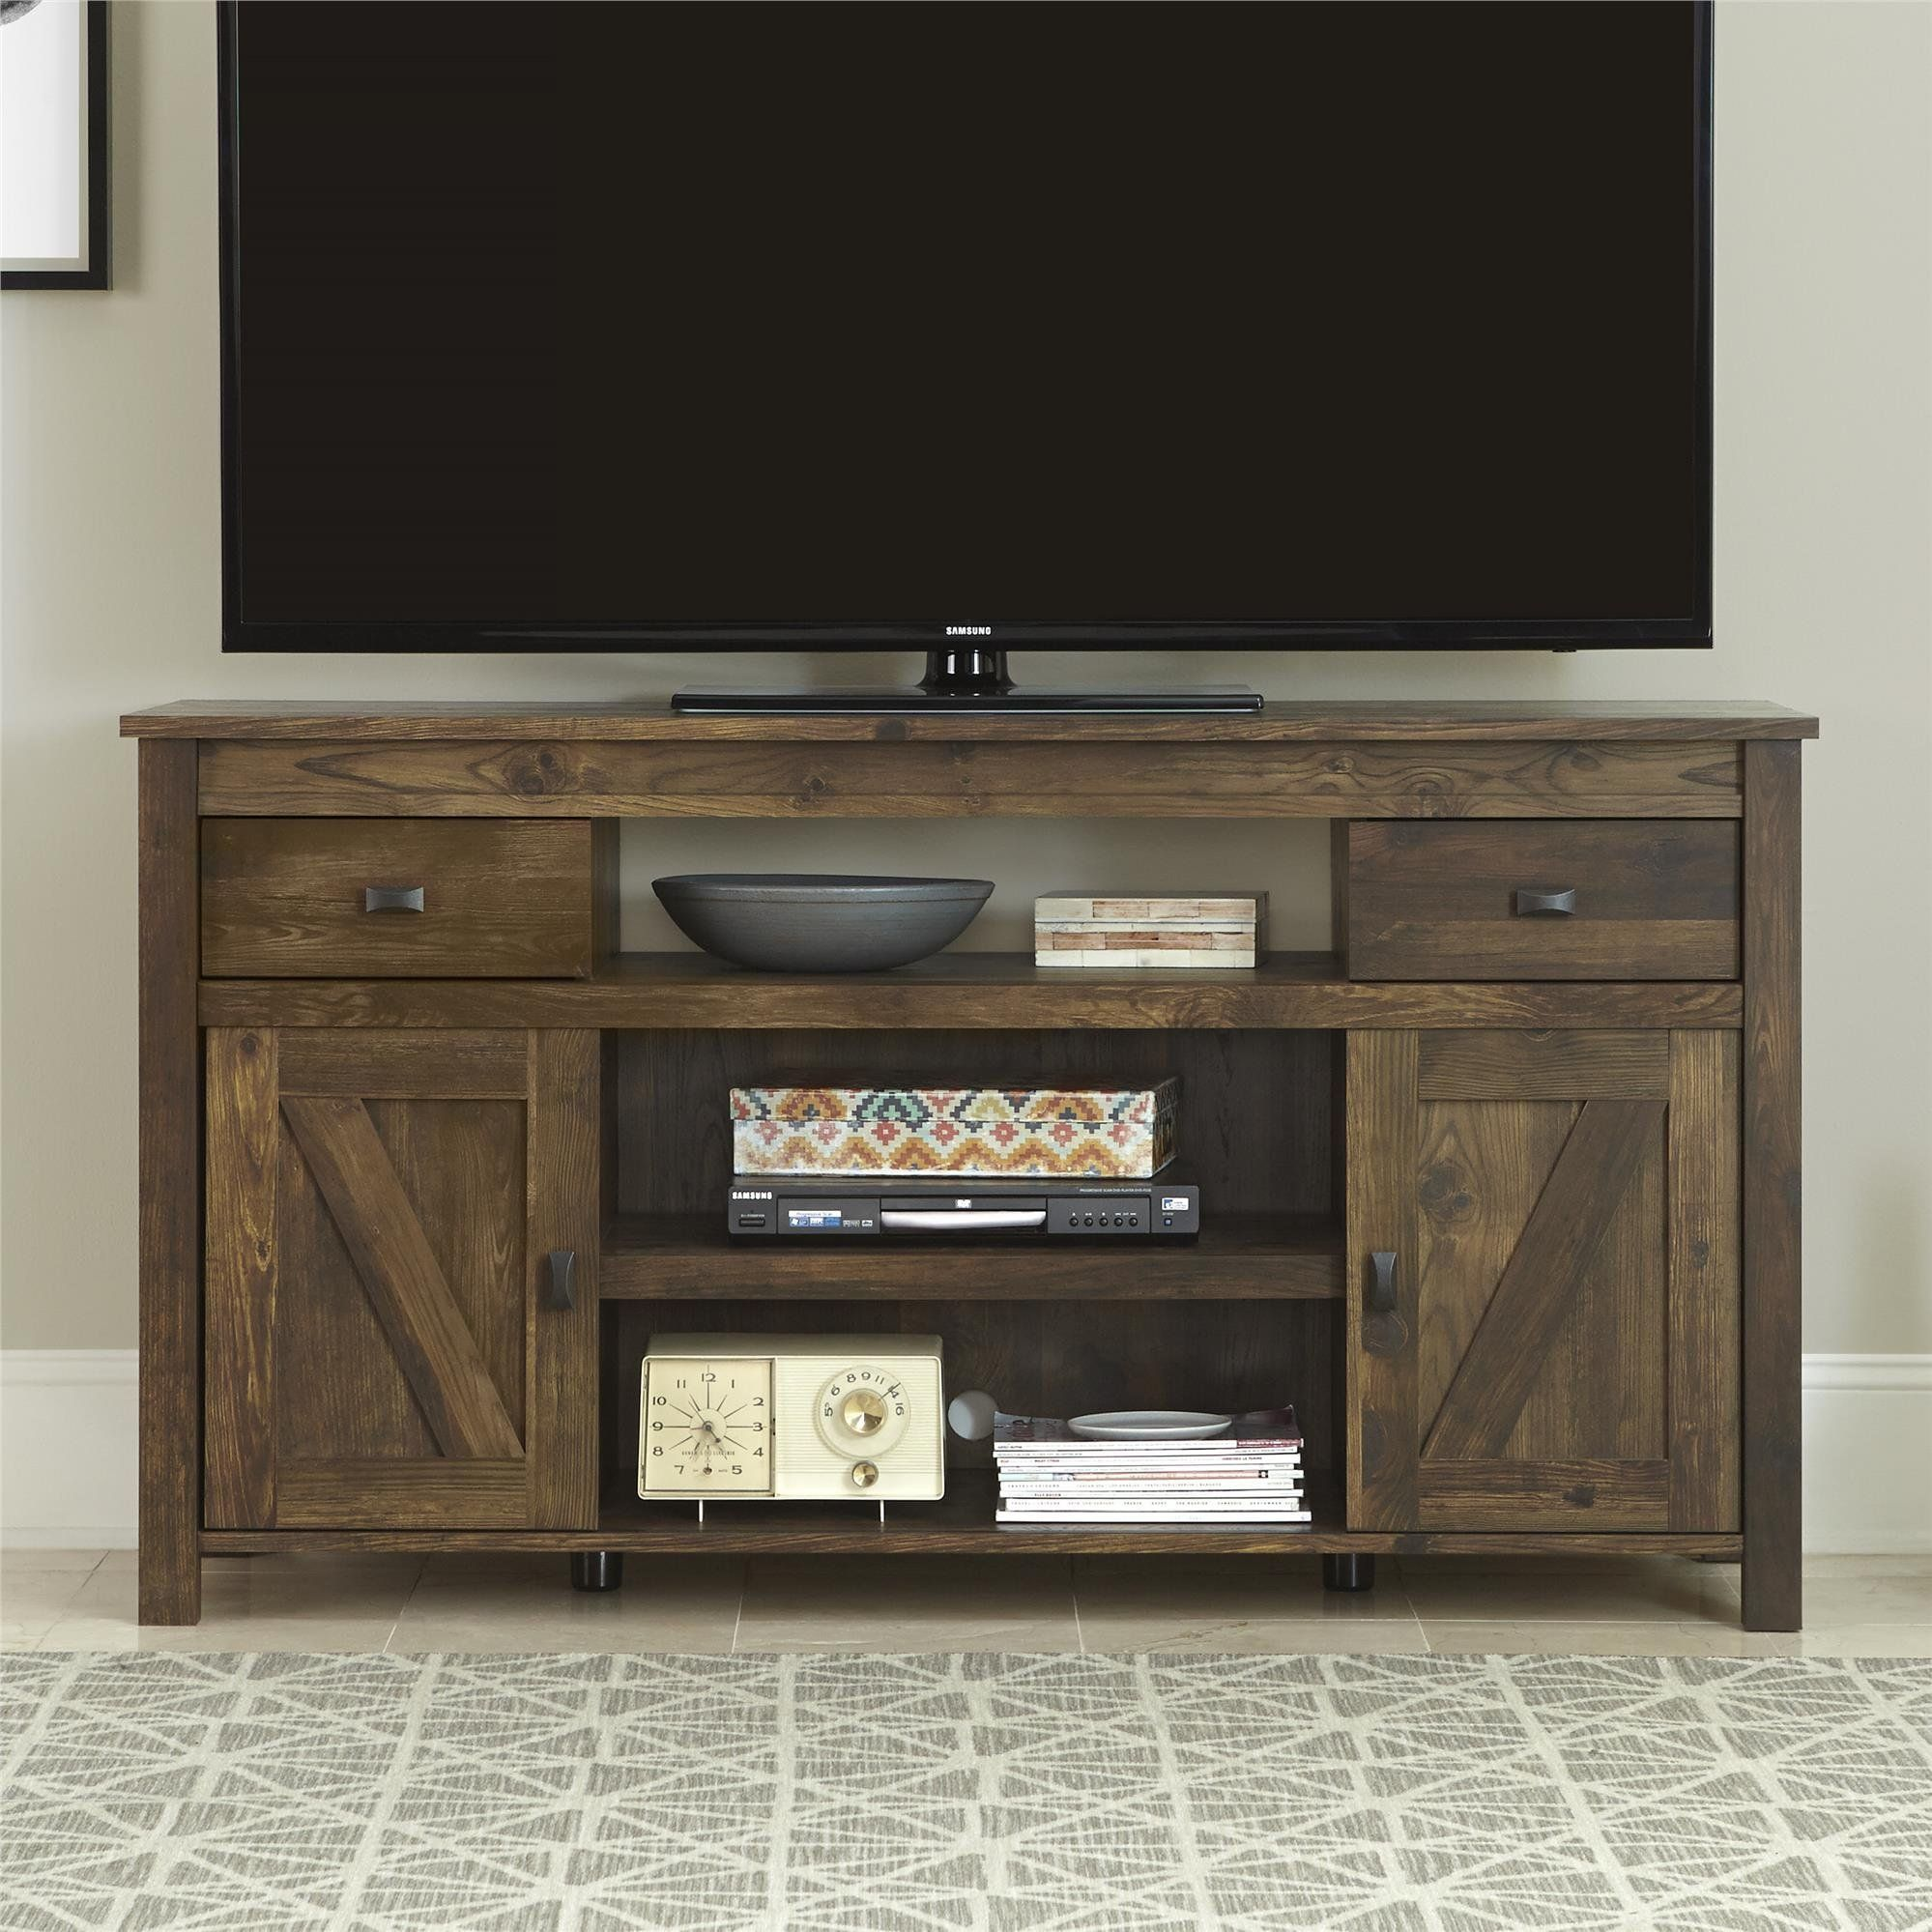 How You Display Your Tv Largely Depends On What Type Of Entertainment Center Use Along With The